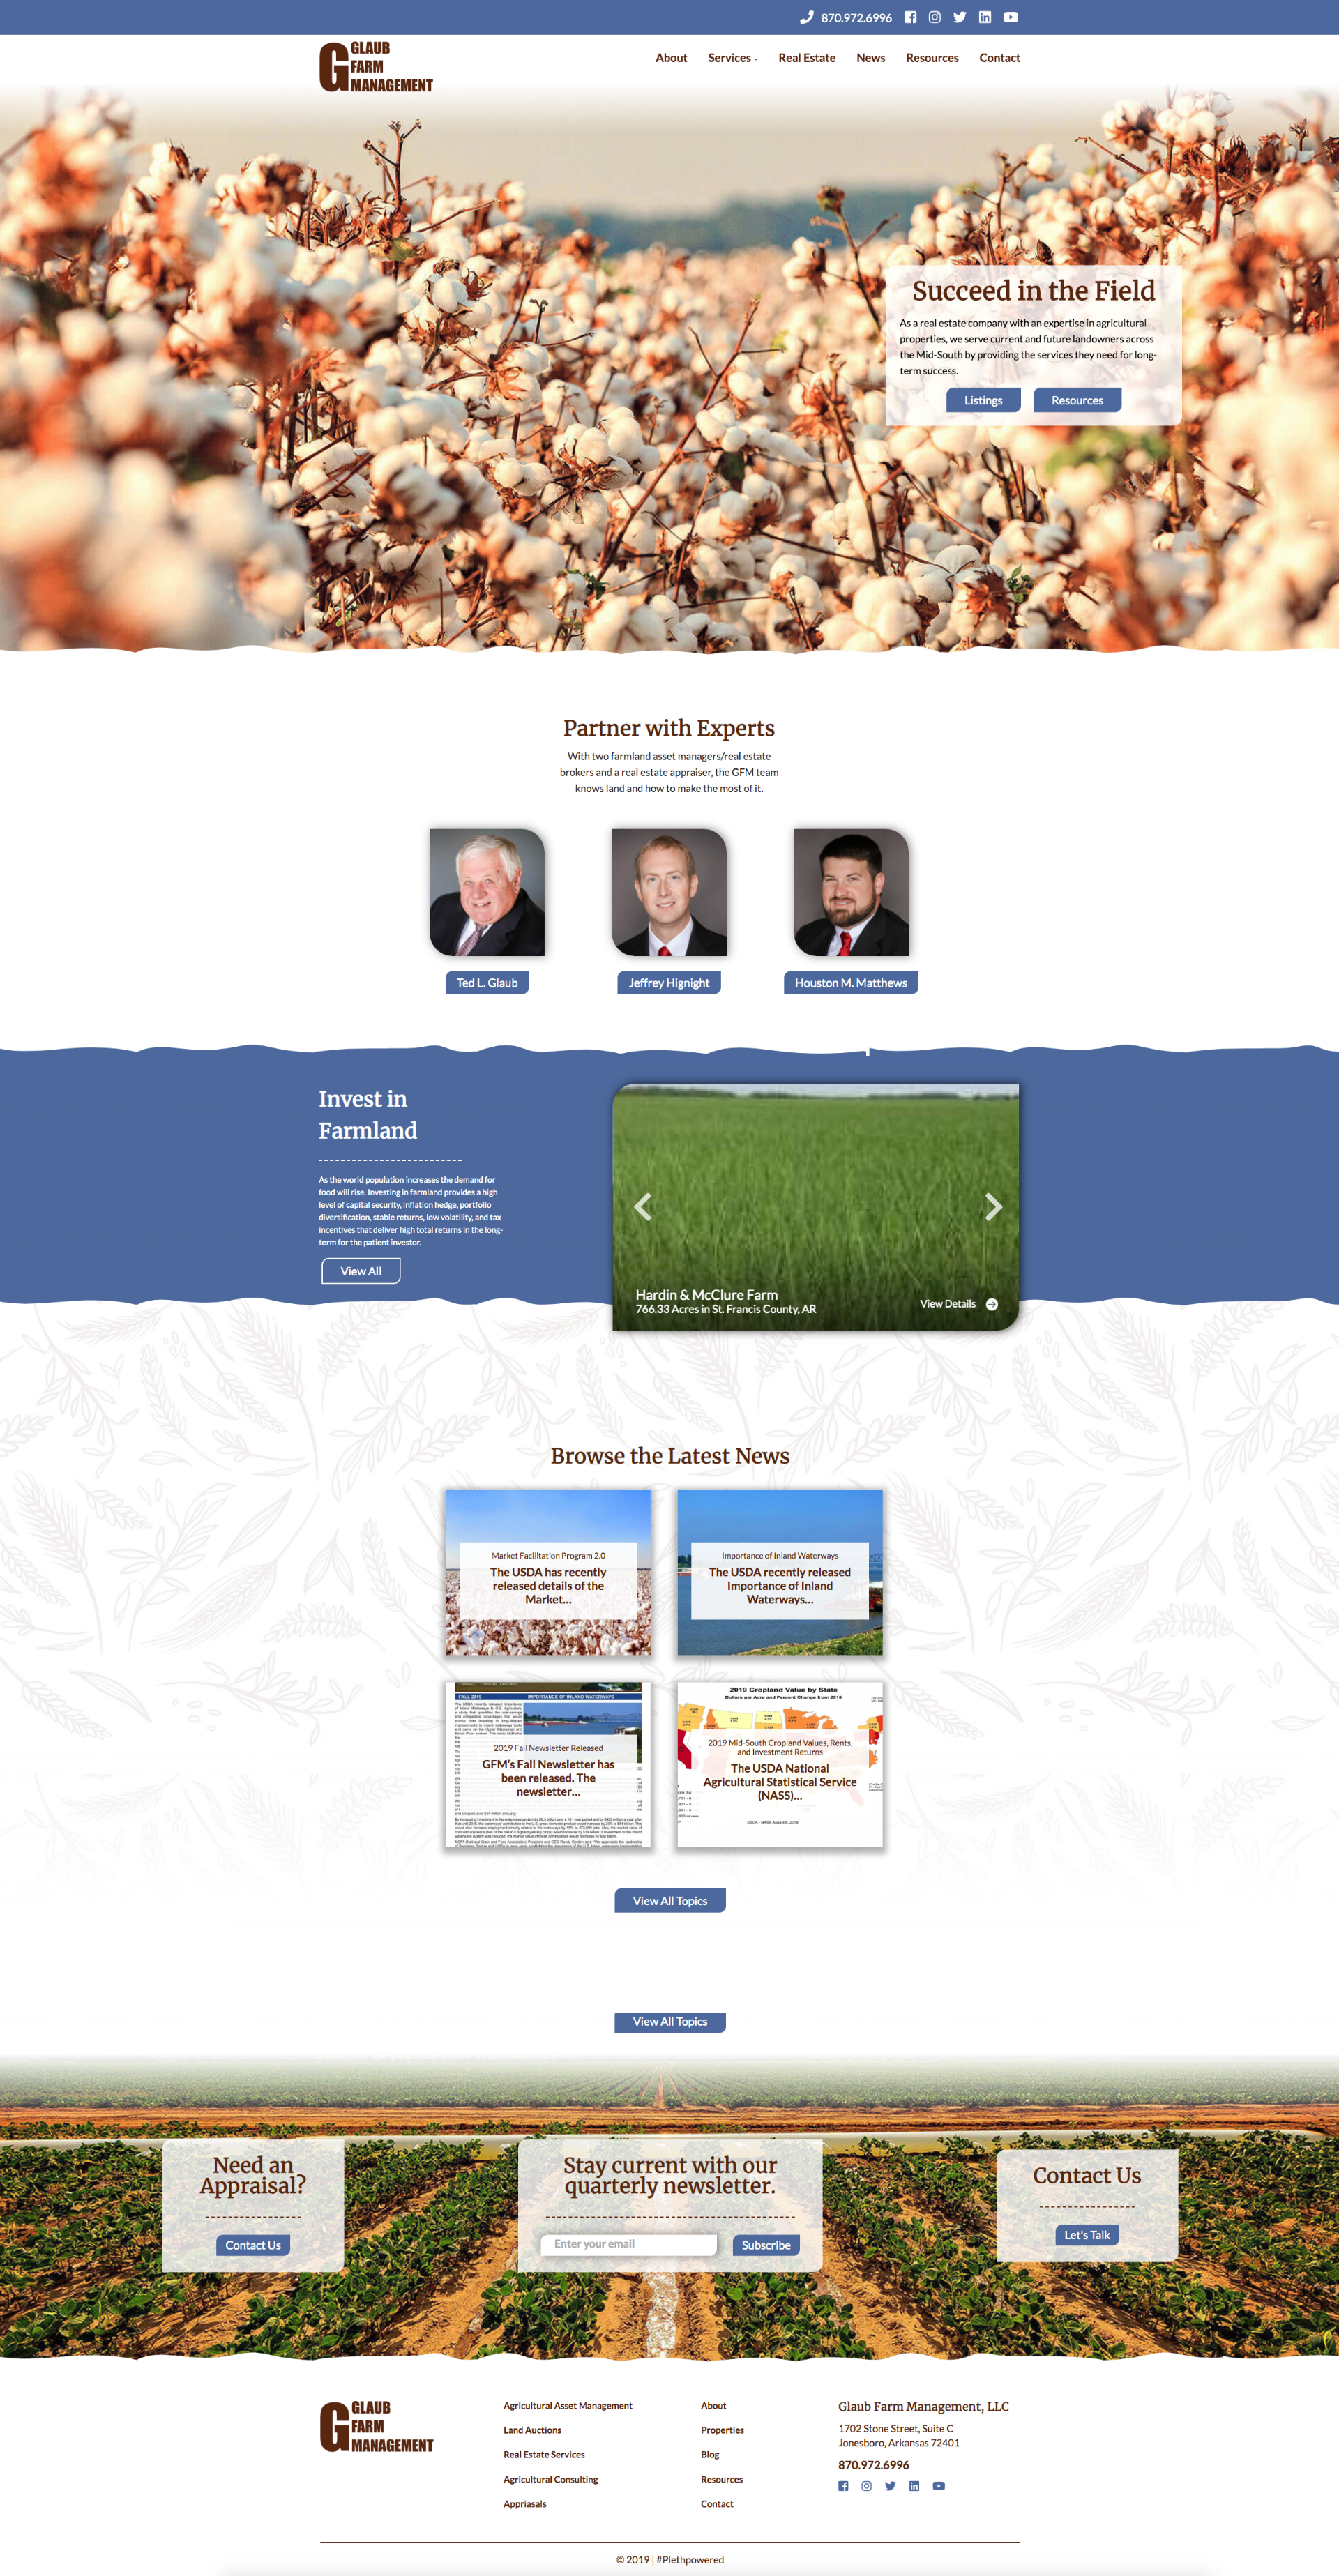 Glaub Farm Management full homepage layout